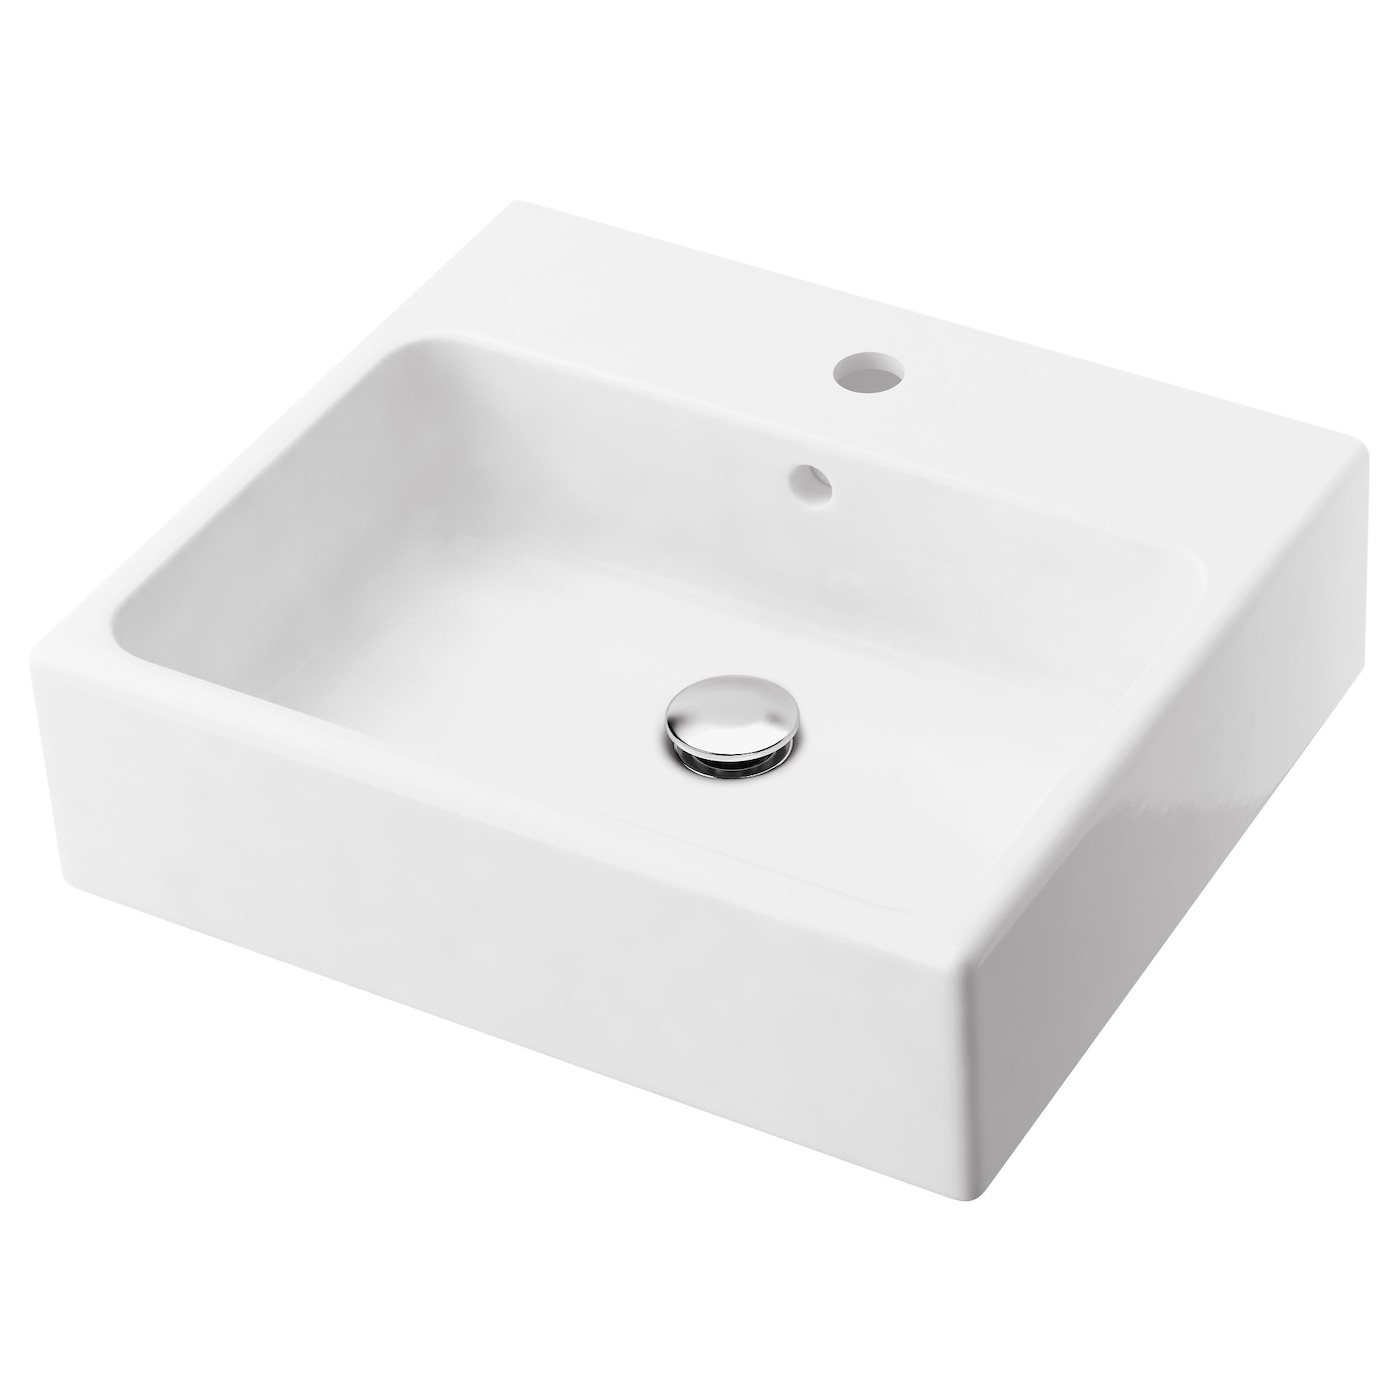 yddingen single wash basin white 45 cm ikea. Black Bedroom Furniture Sets. Home Design Ideas